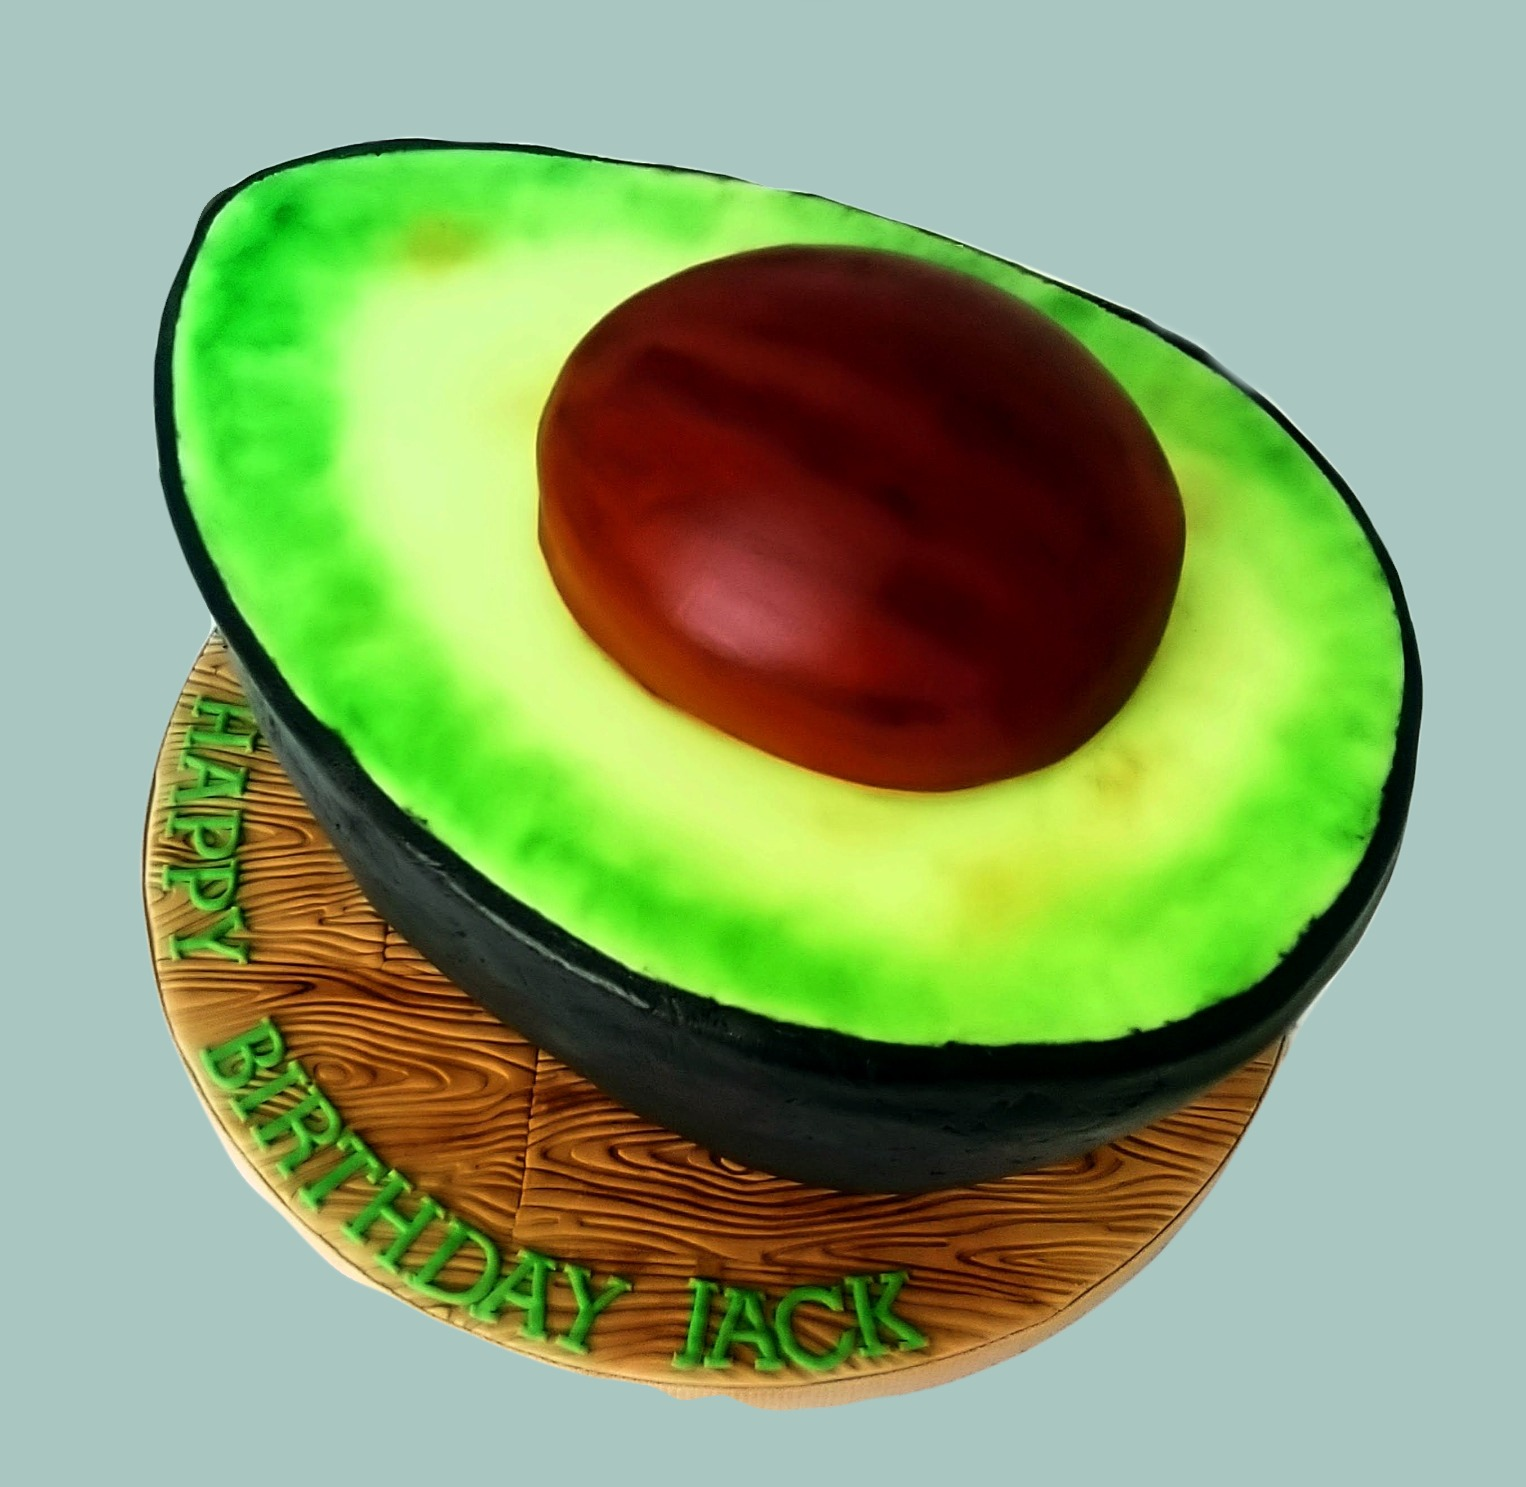 Giant Avocado Cake